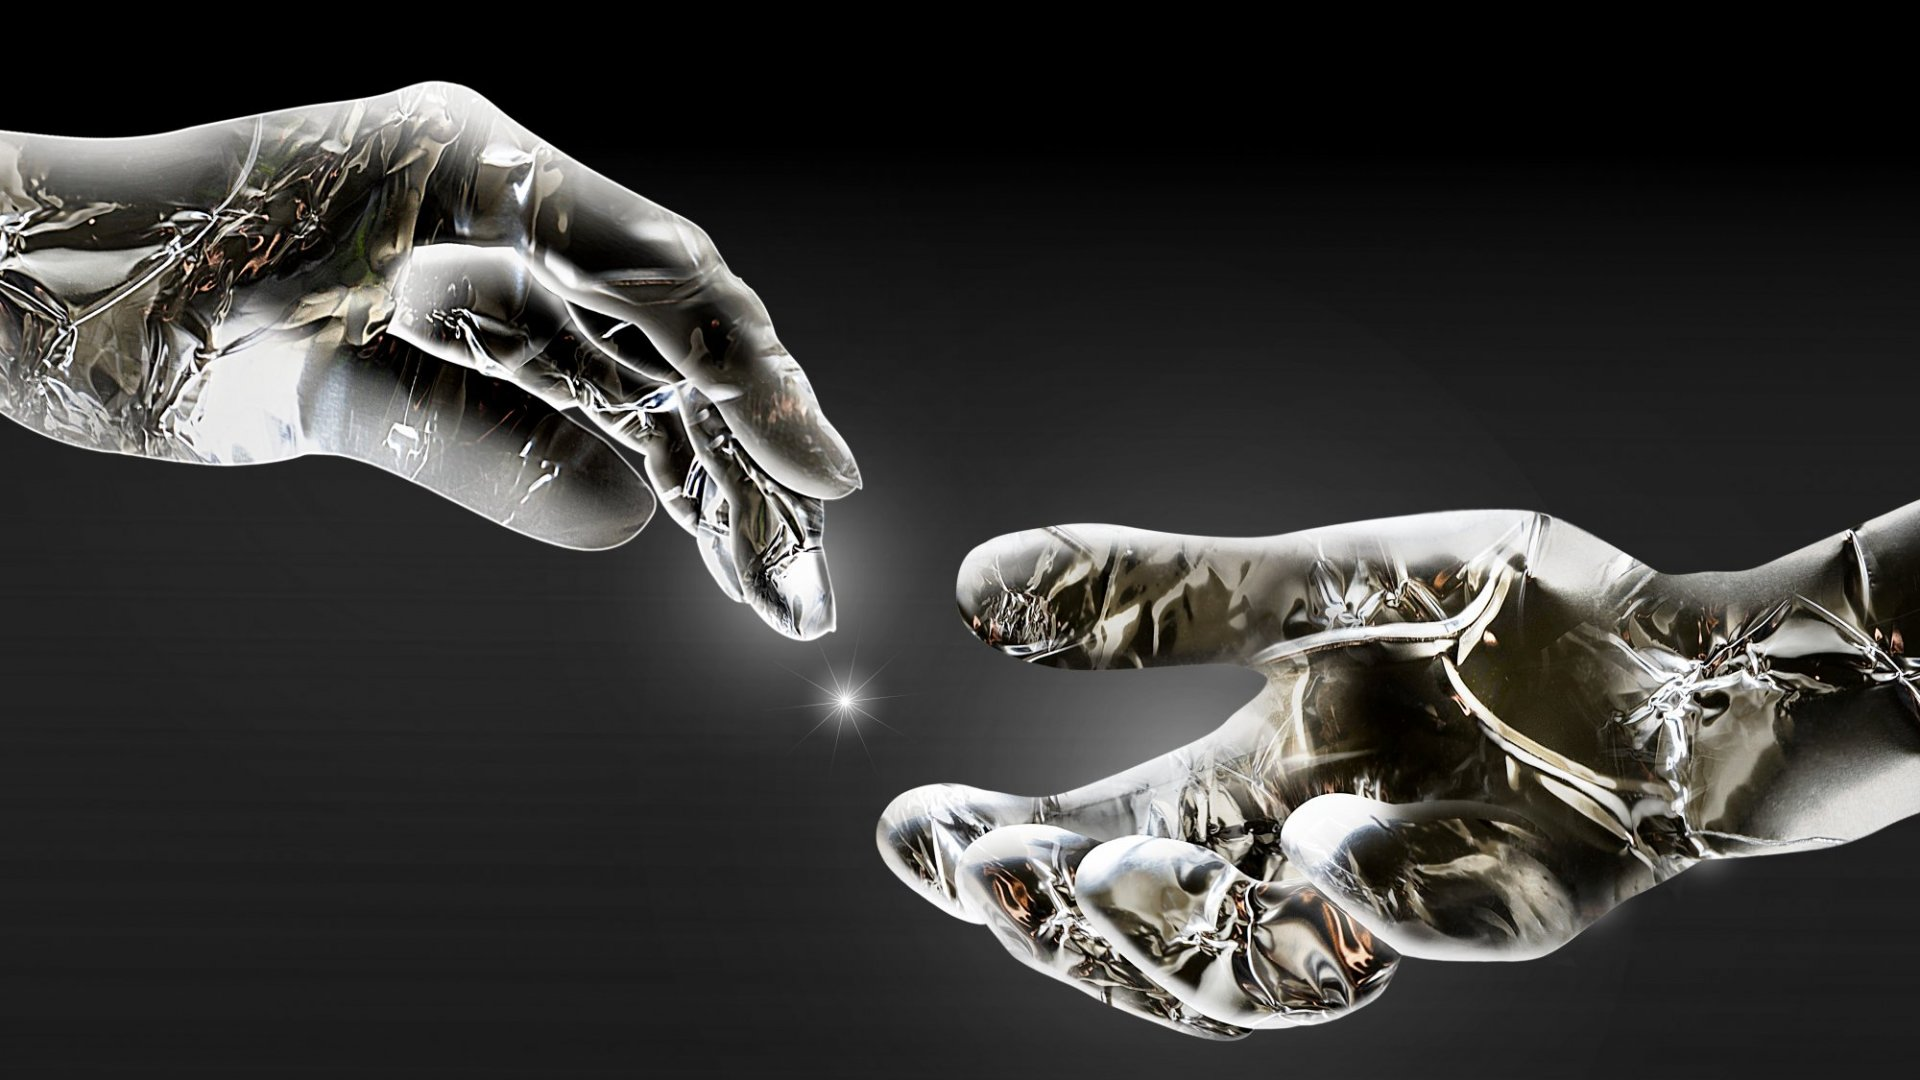 How can we foster trust between humans and AI?